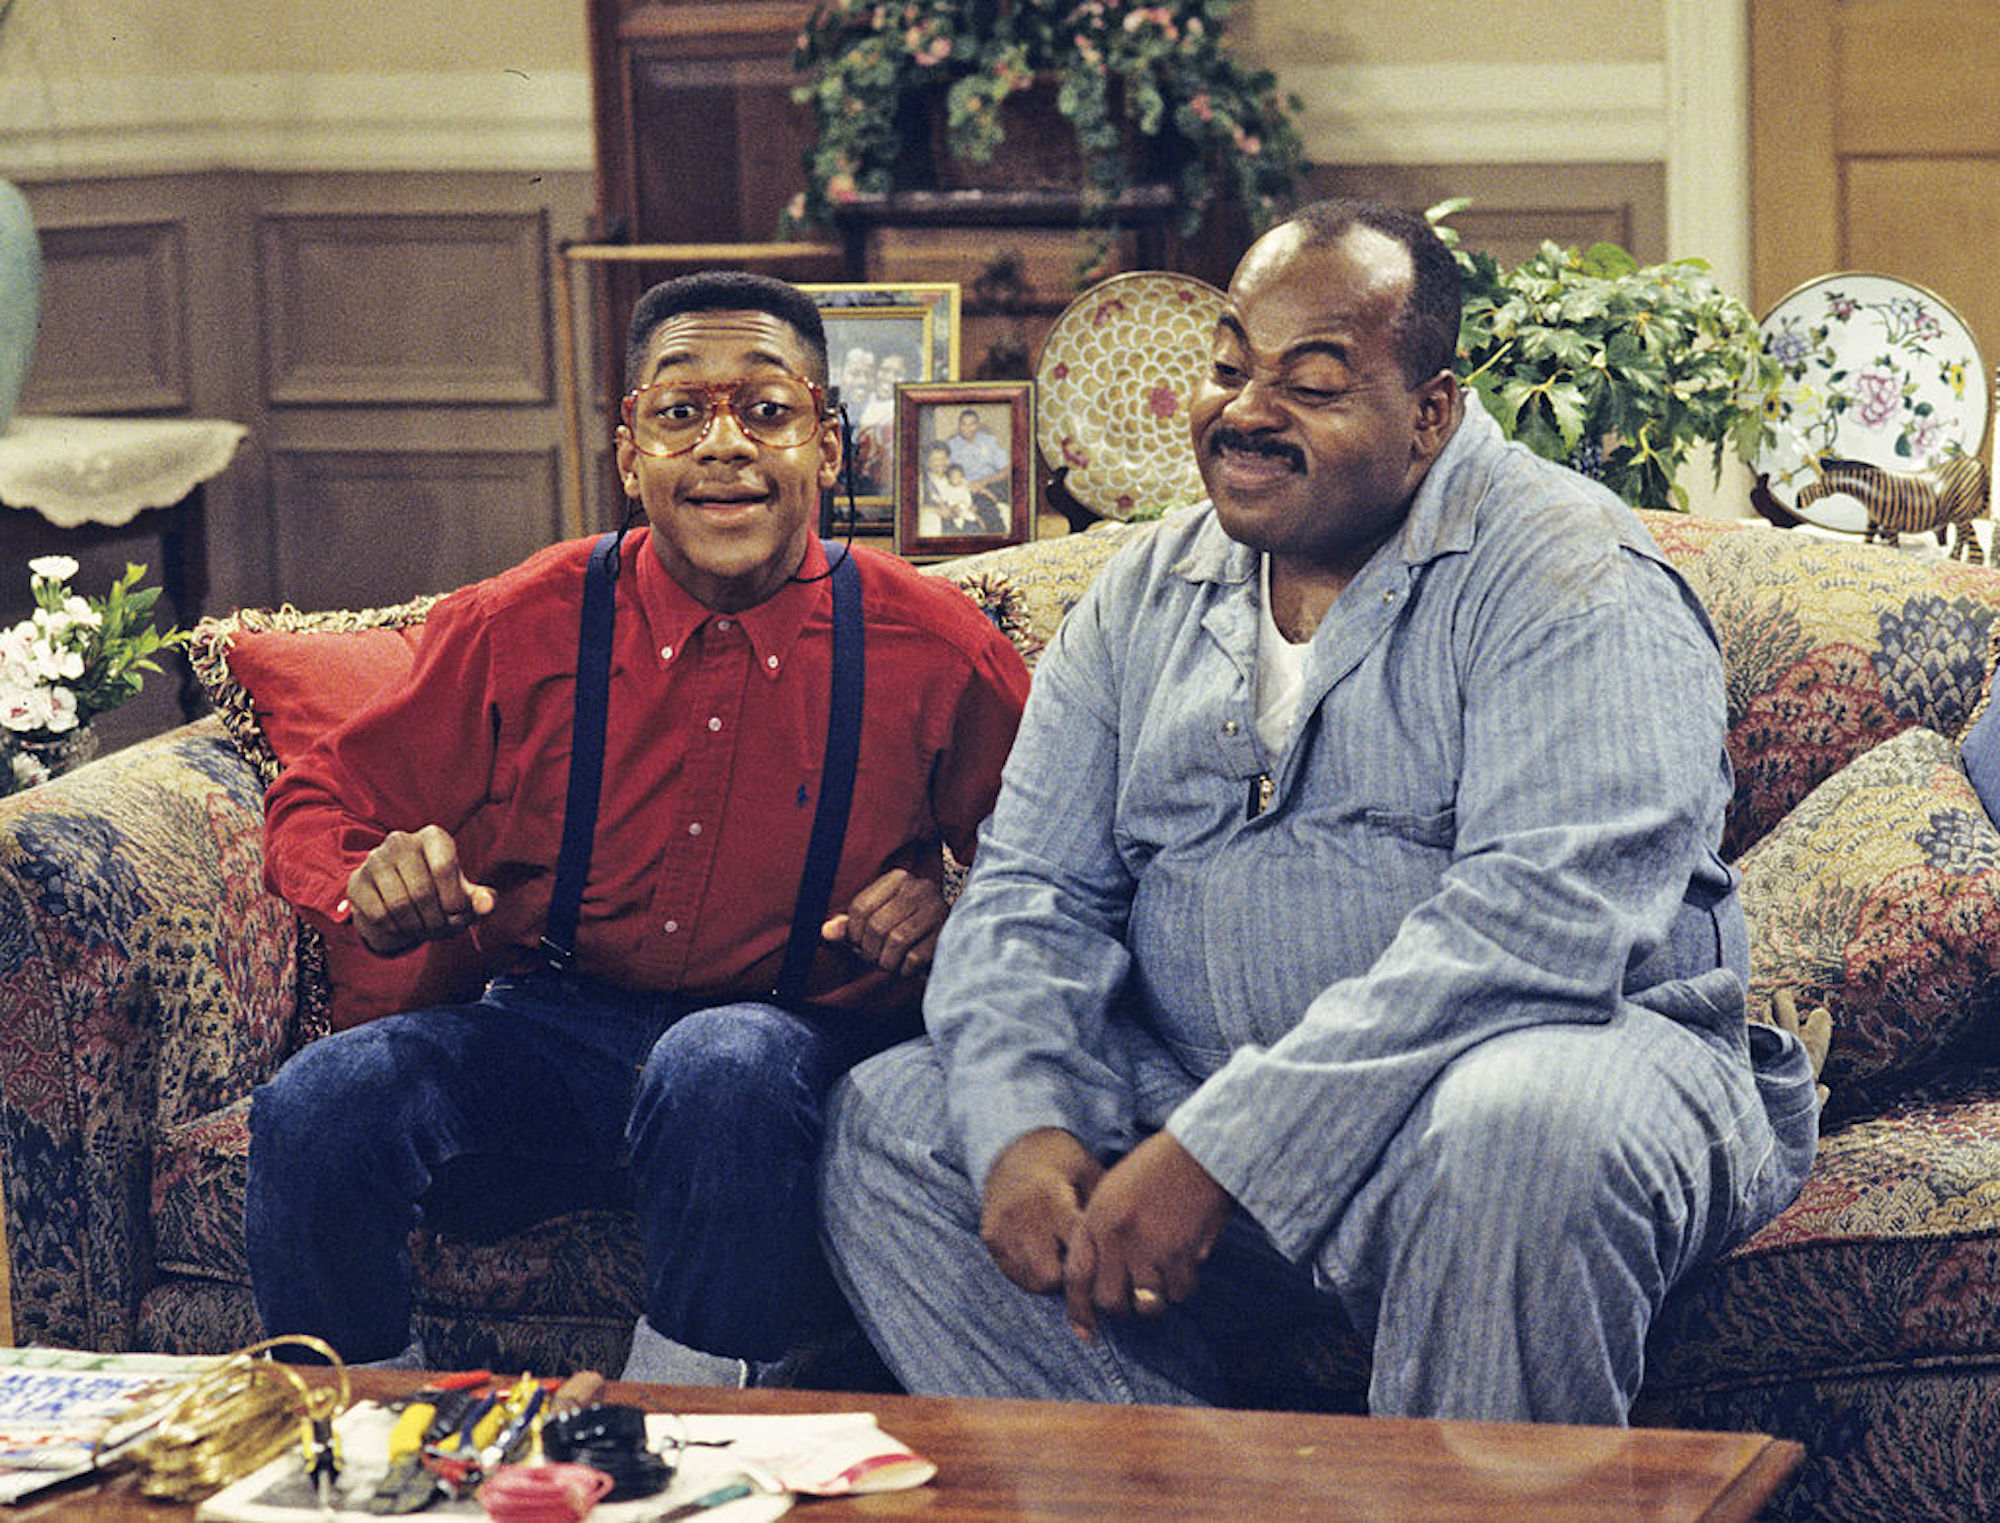 Steve Urkel was intended to appear in one episode of Family Matters, but he was cast as a character on the series on audience demand.